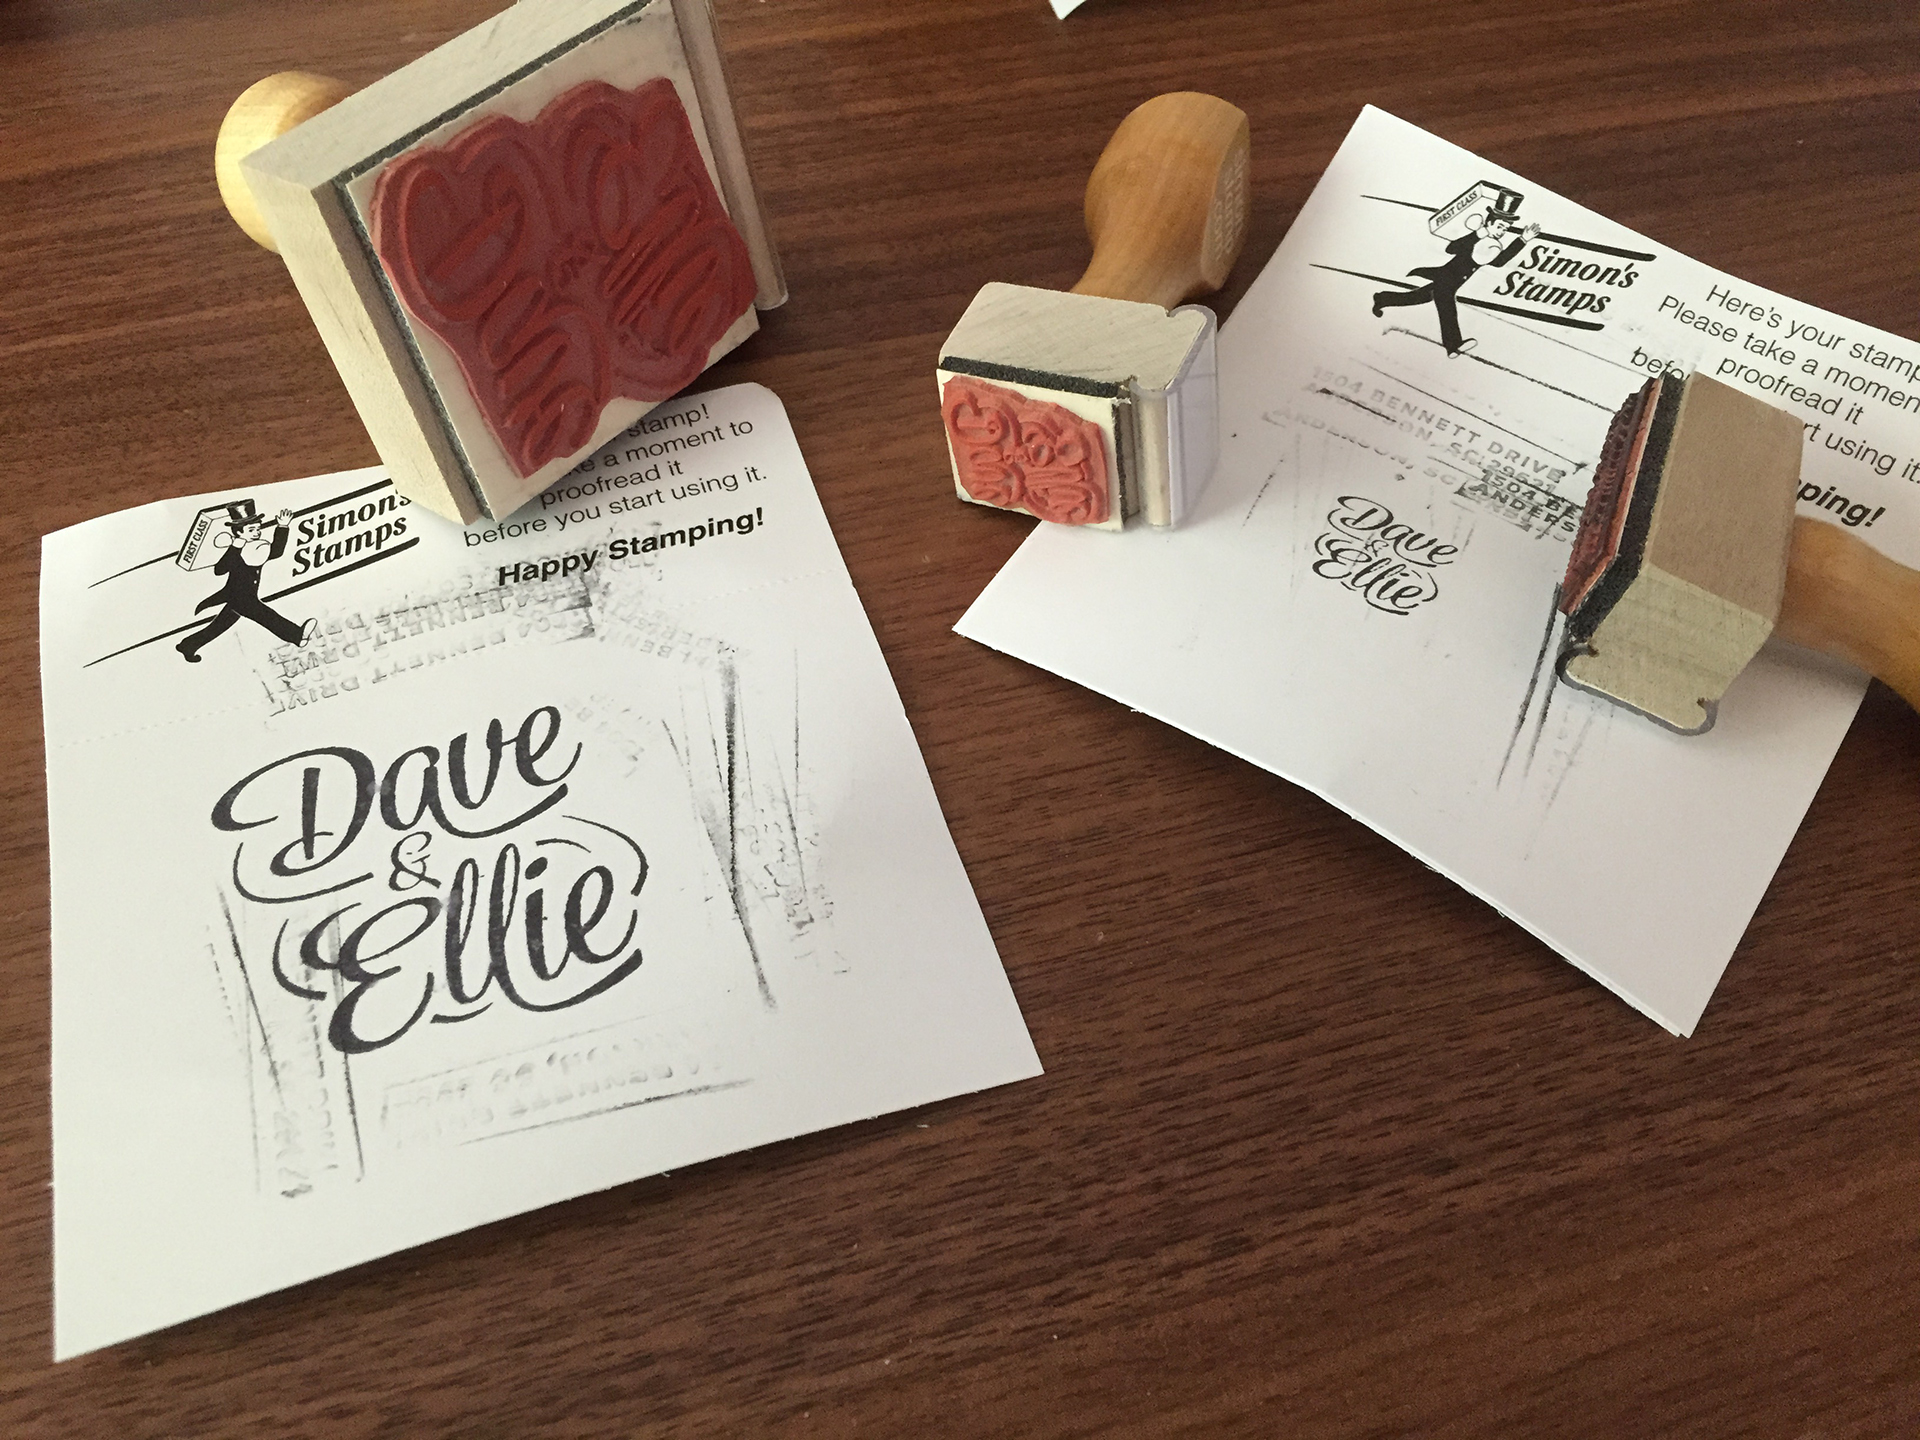 Custom rubber stamps made for packaging elements.